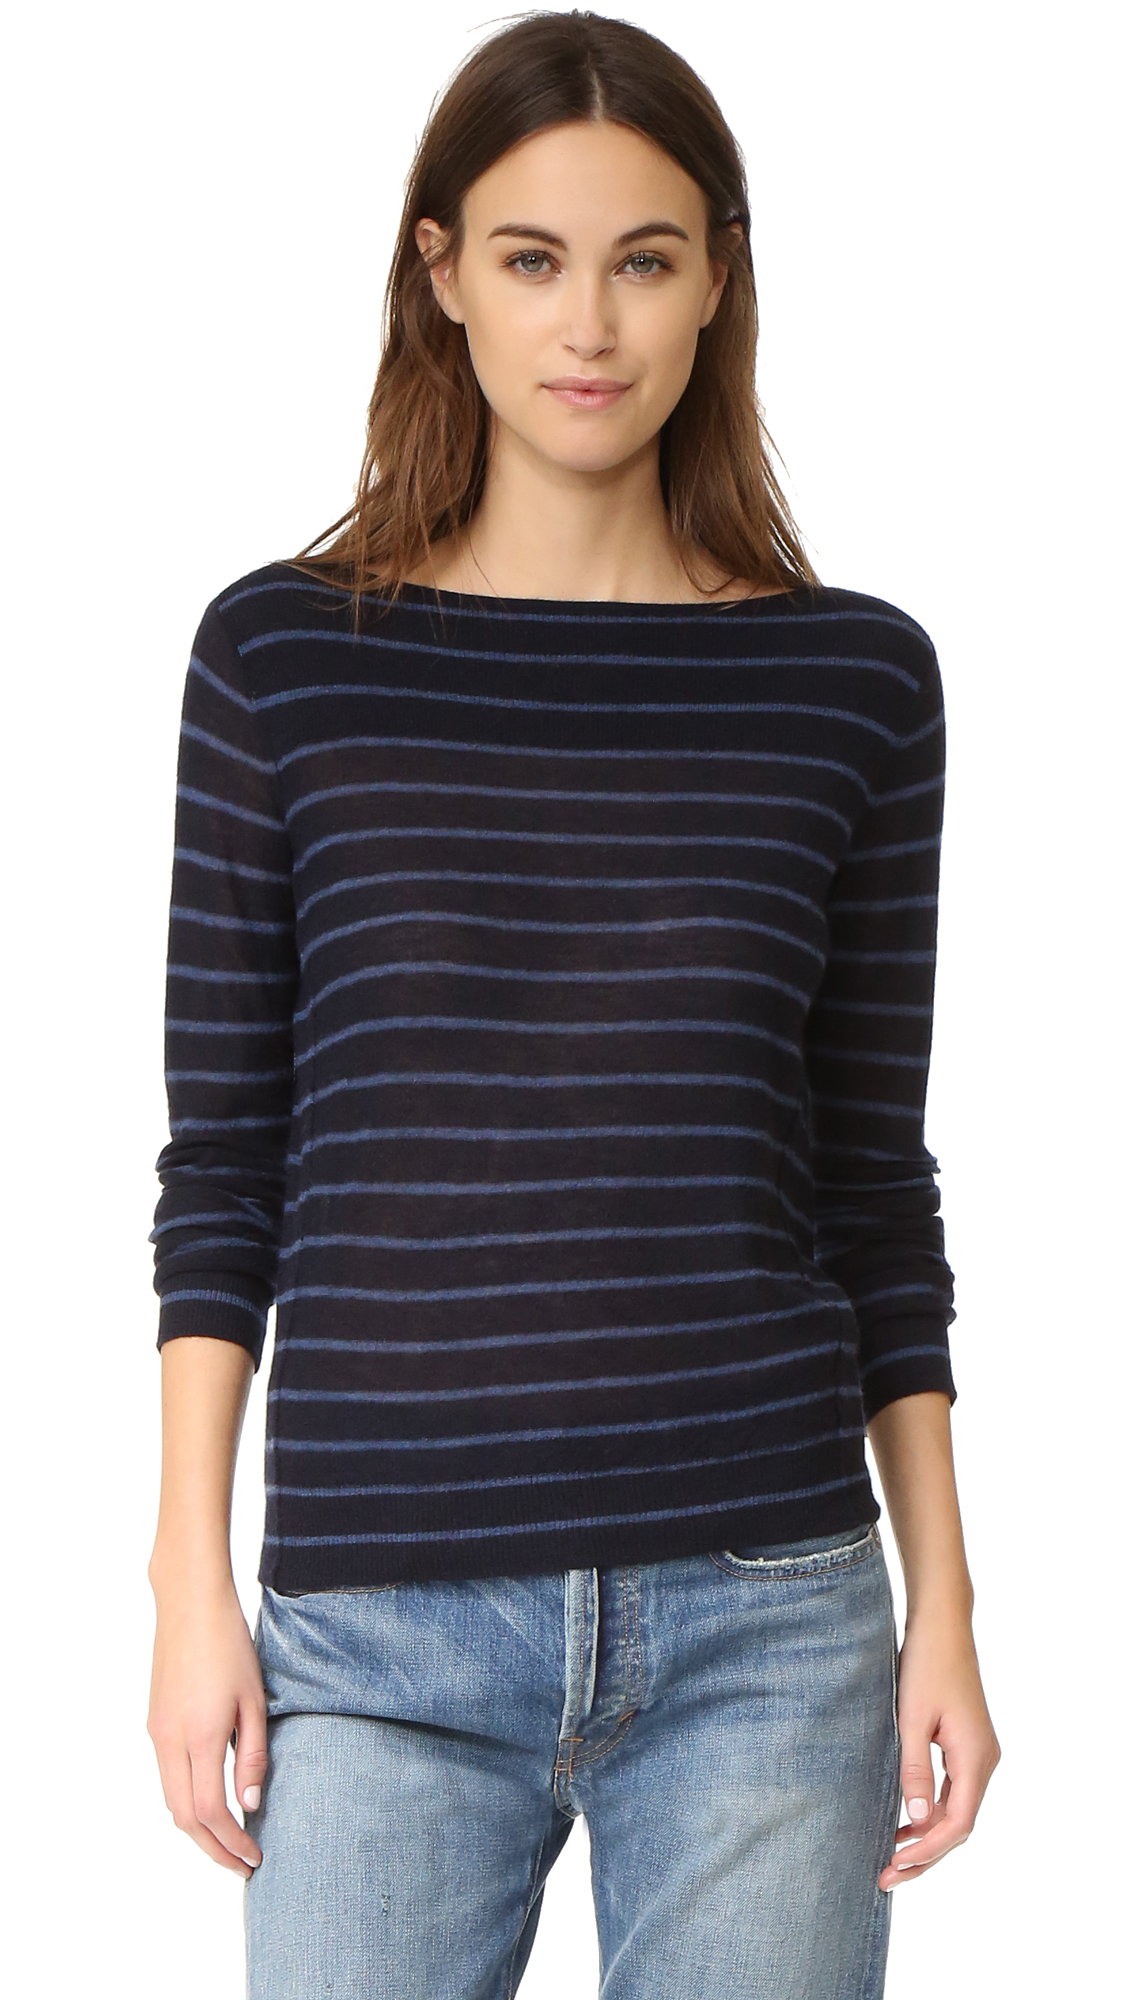 Vince Striped Cashmere Sweater - Coastal/Imperial Blue